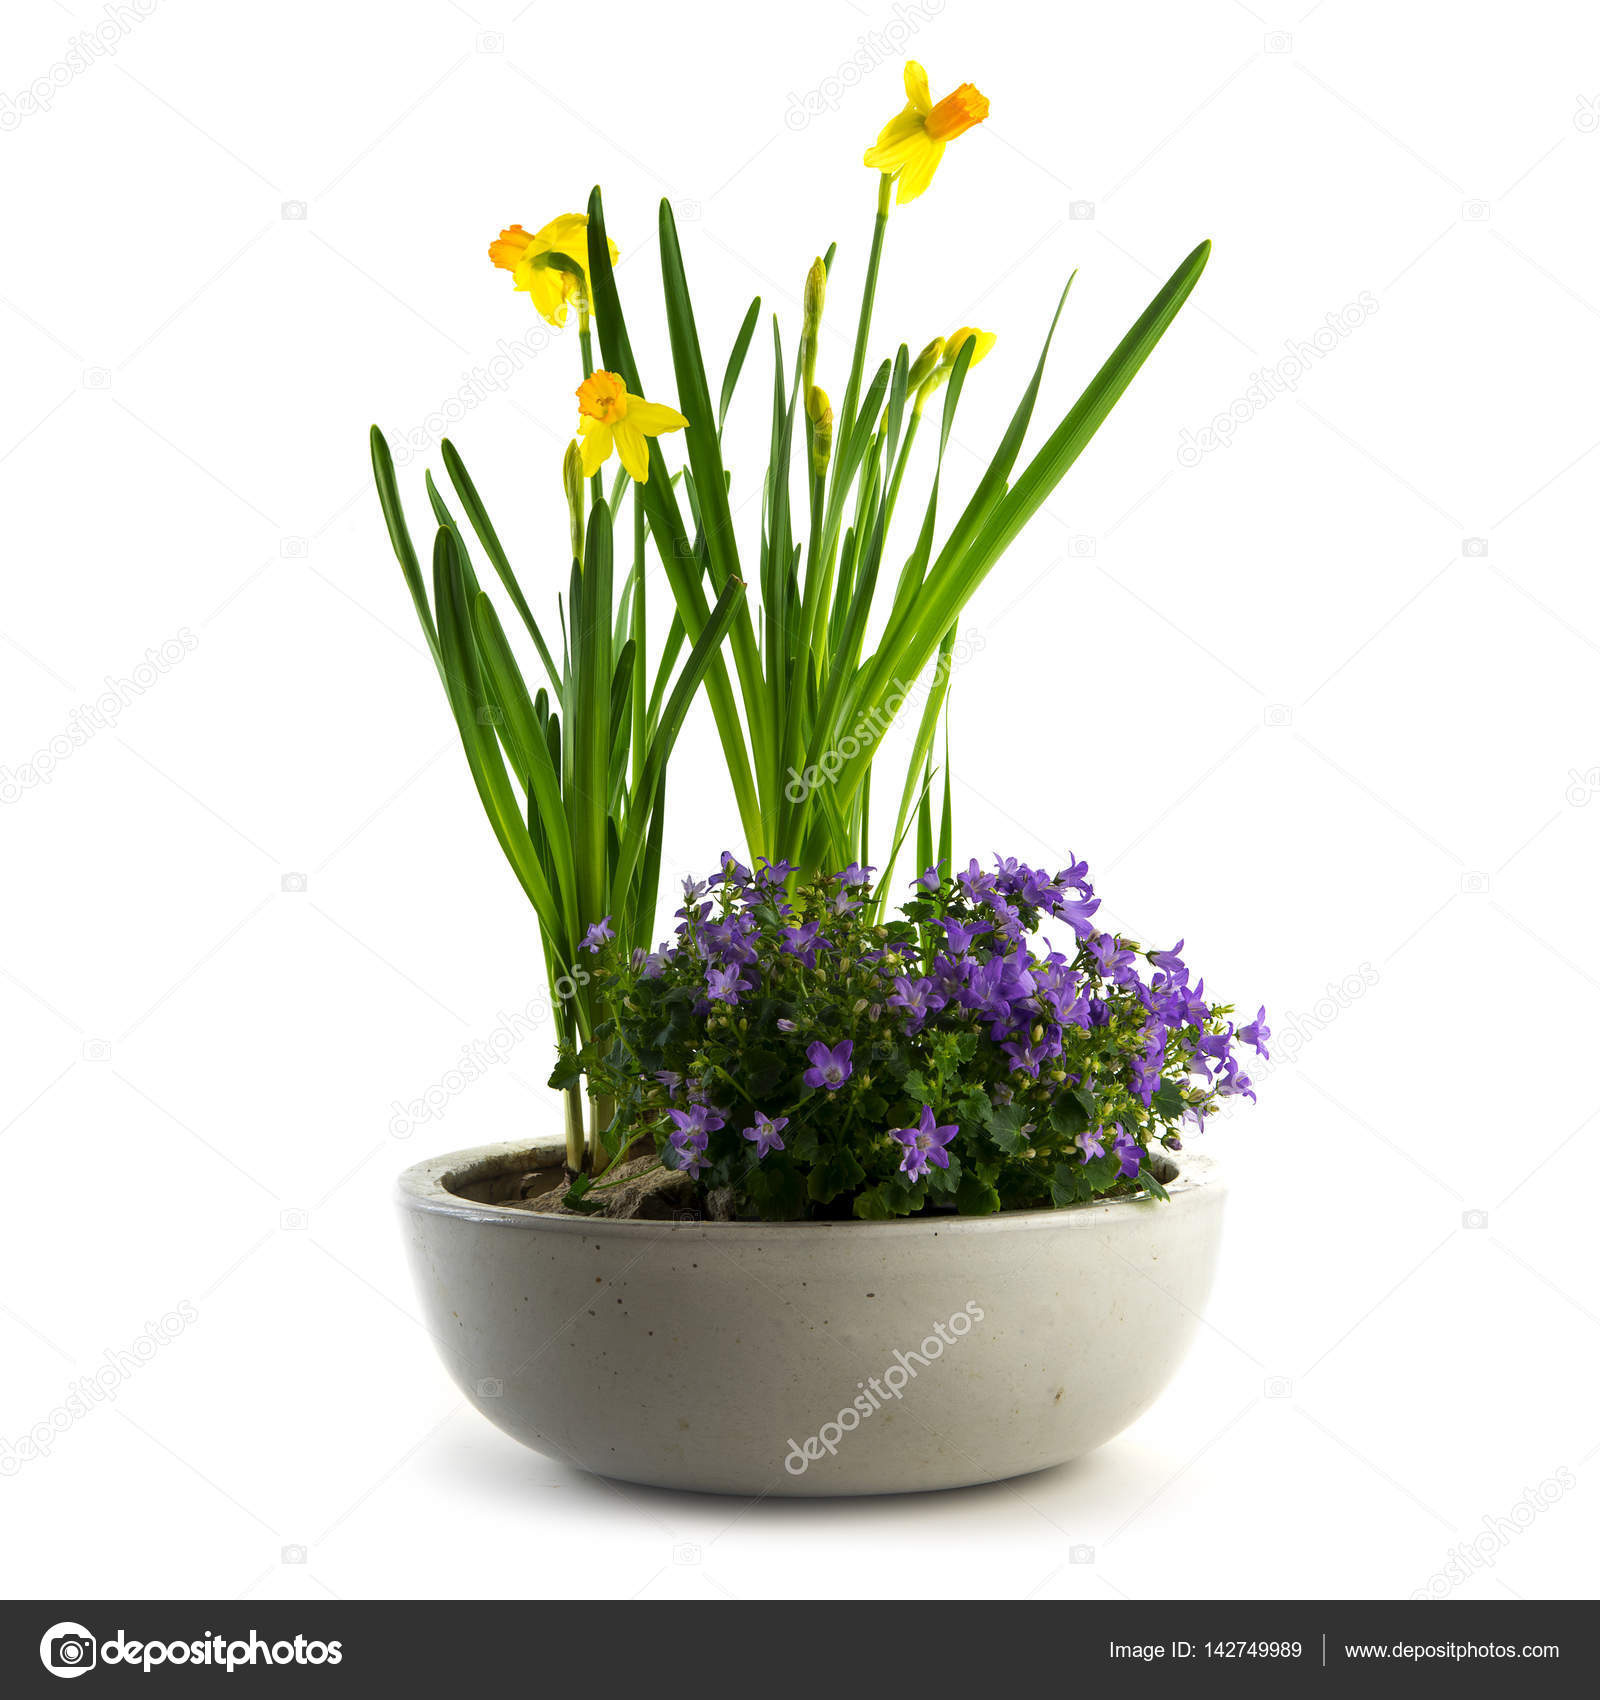 Spring flowers potted as easter decoration daffodils and bluebells spring flowers potted as easter decoration daffodils and bluebells isolated on white stock photo mightylinksfo